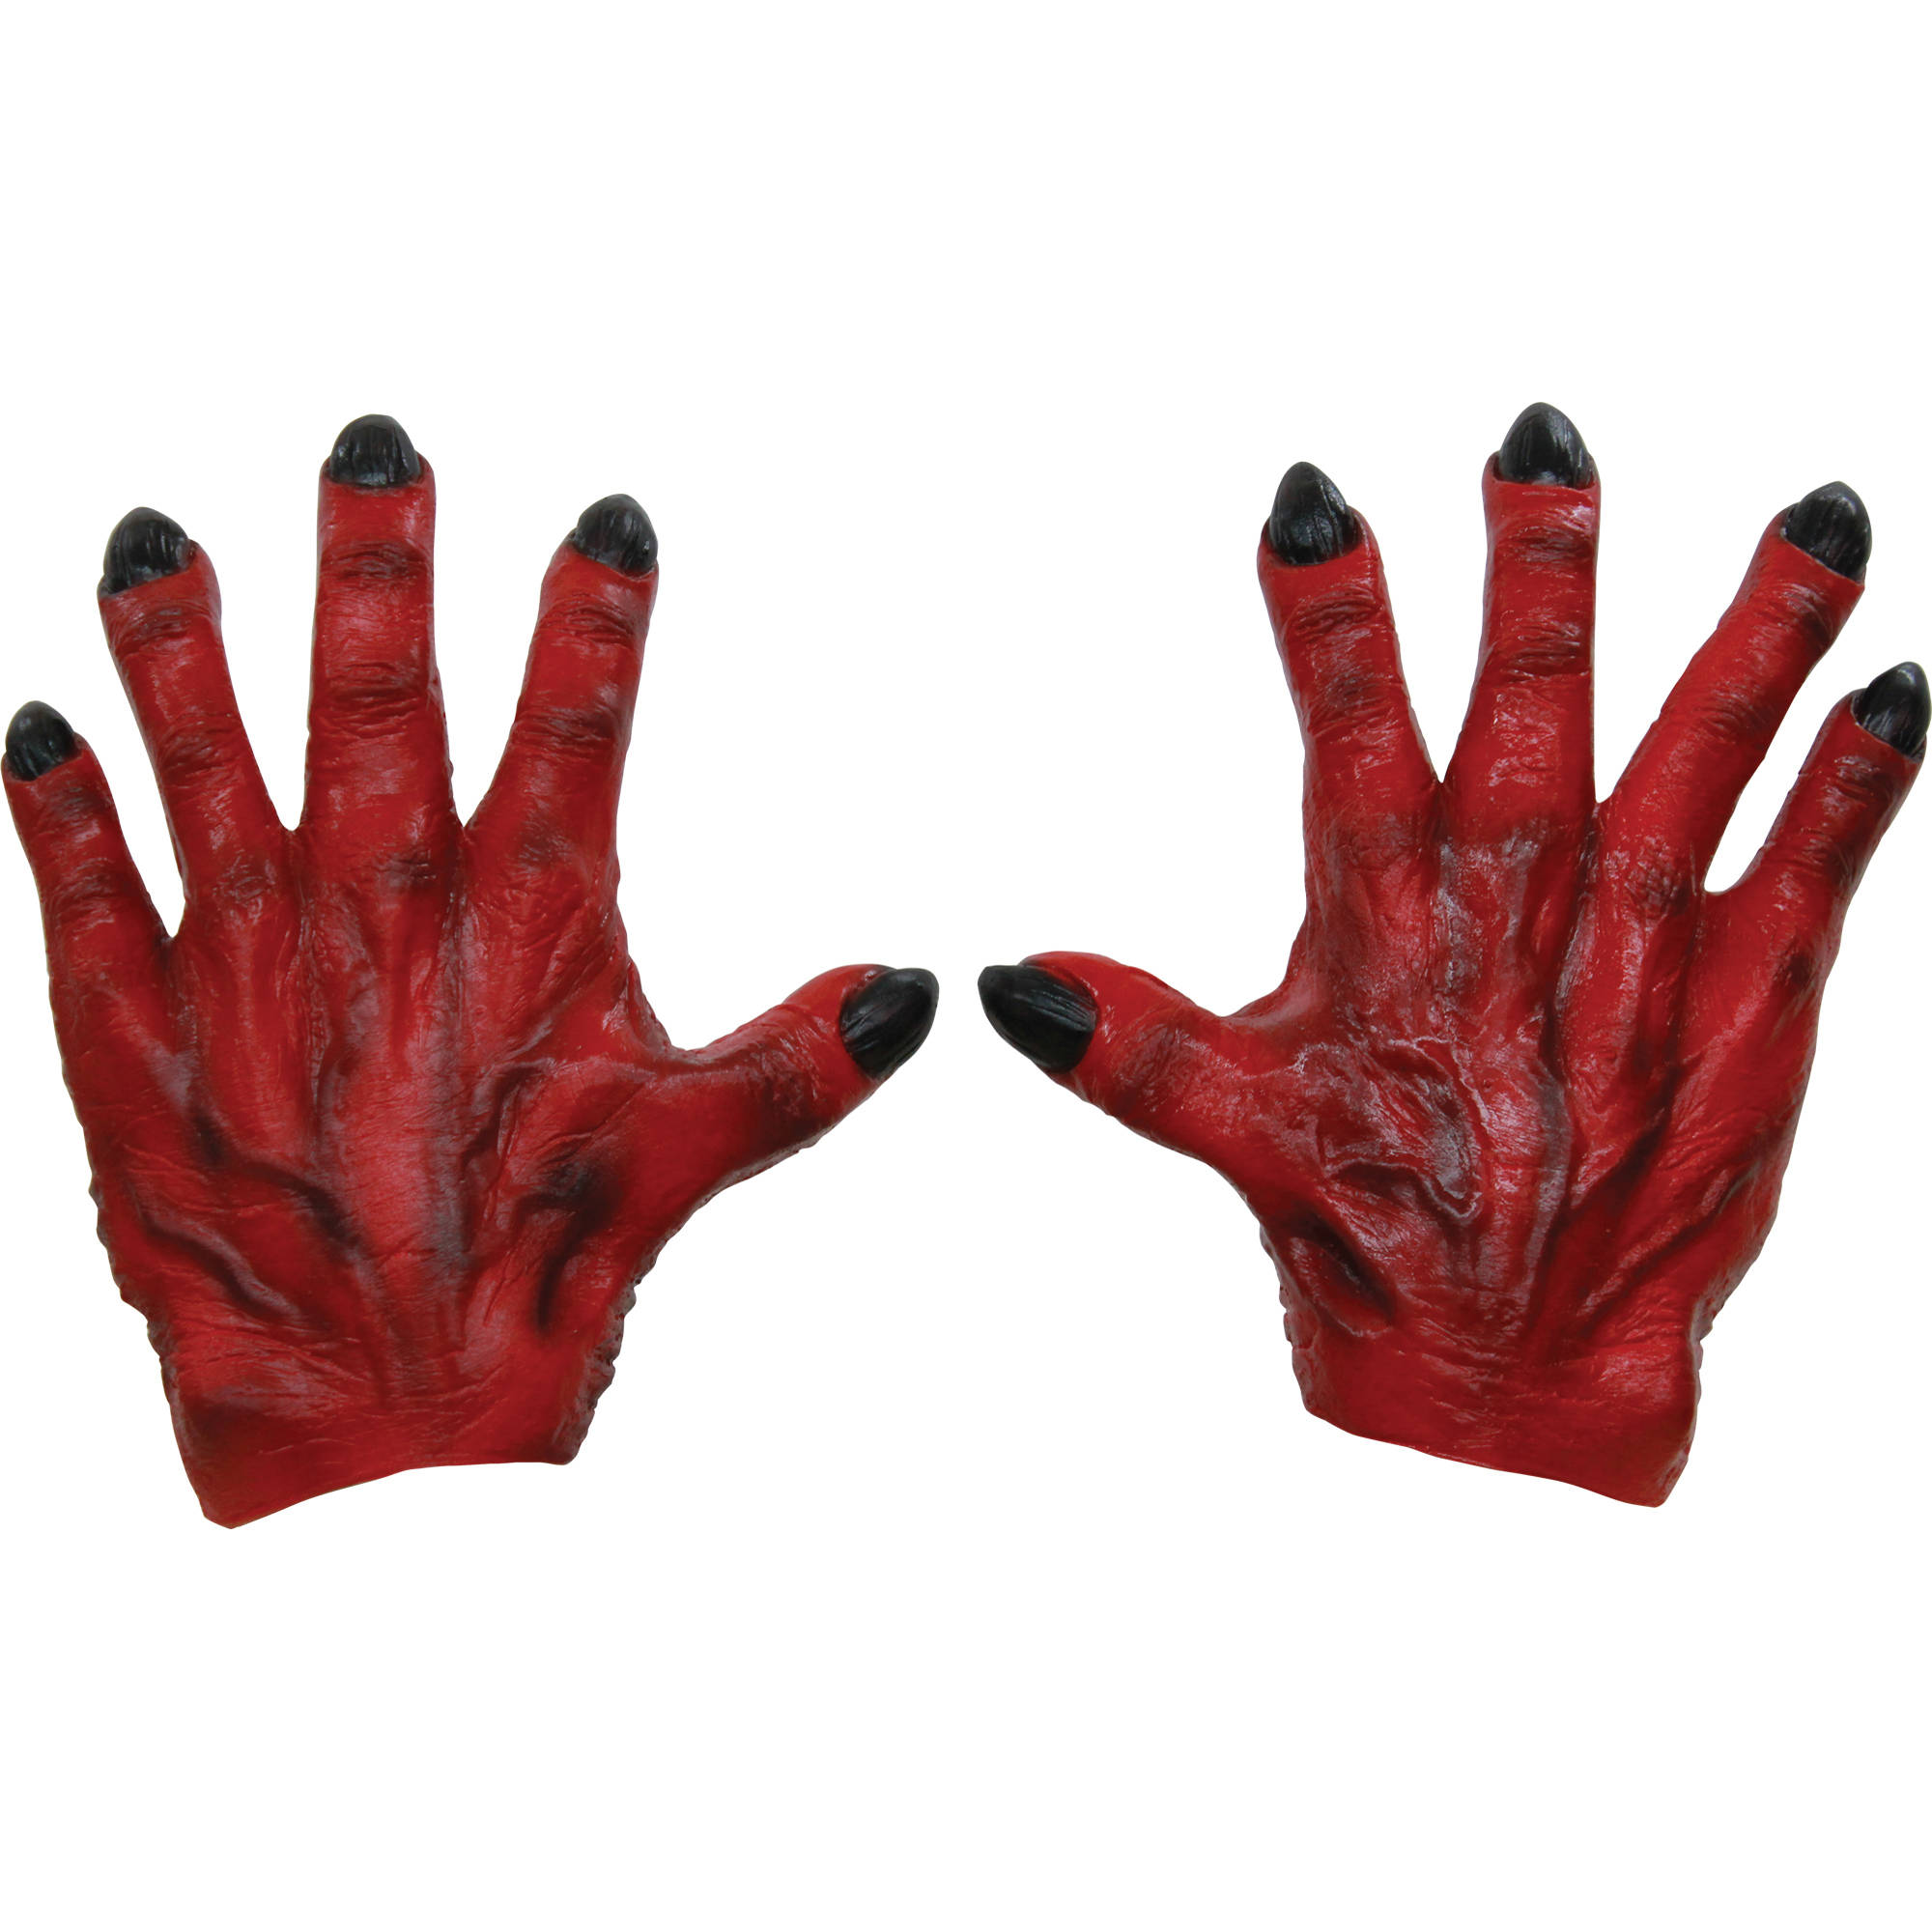 Red Monster Latex Hands Adult Halloween Accessory